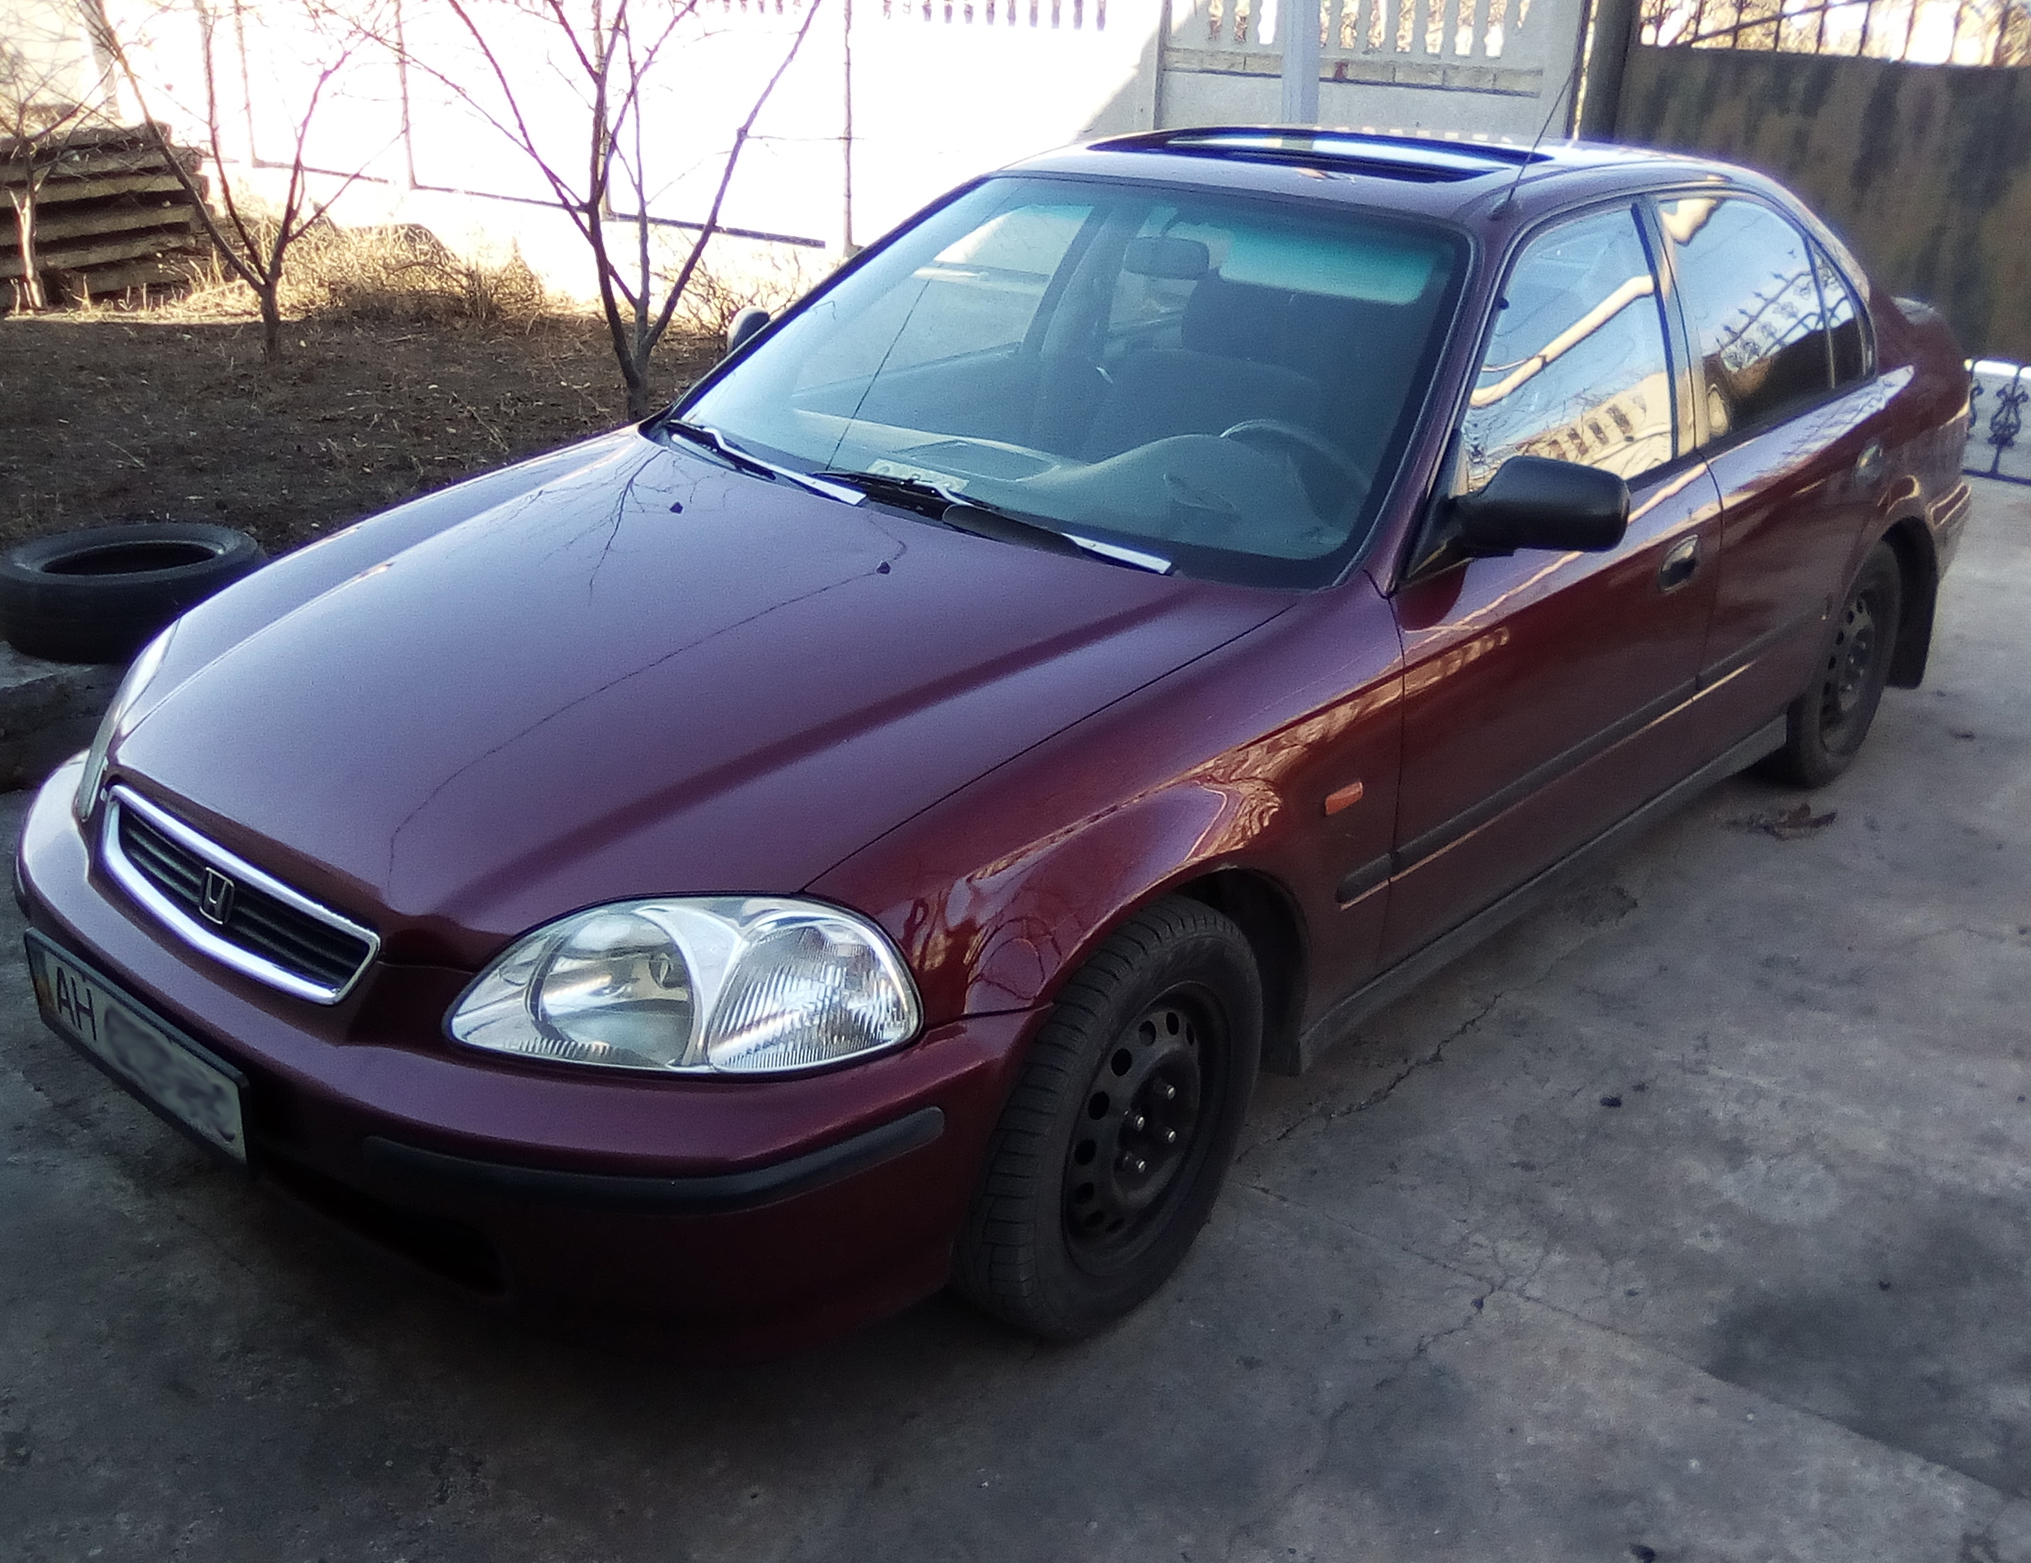 Honda Civic VI Седан 1.5 AT/MT (90 л.с.)